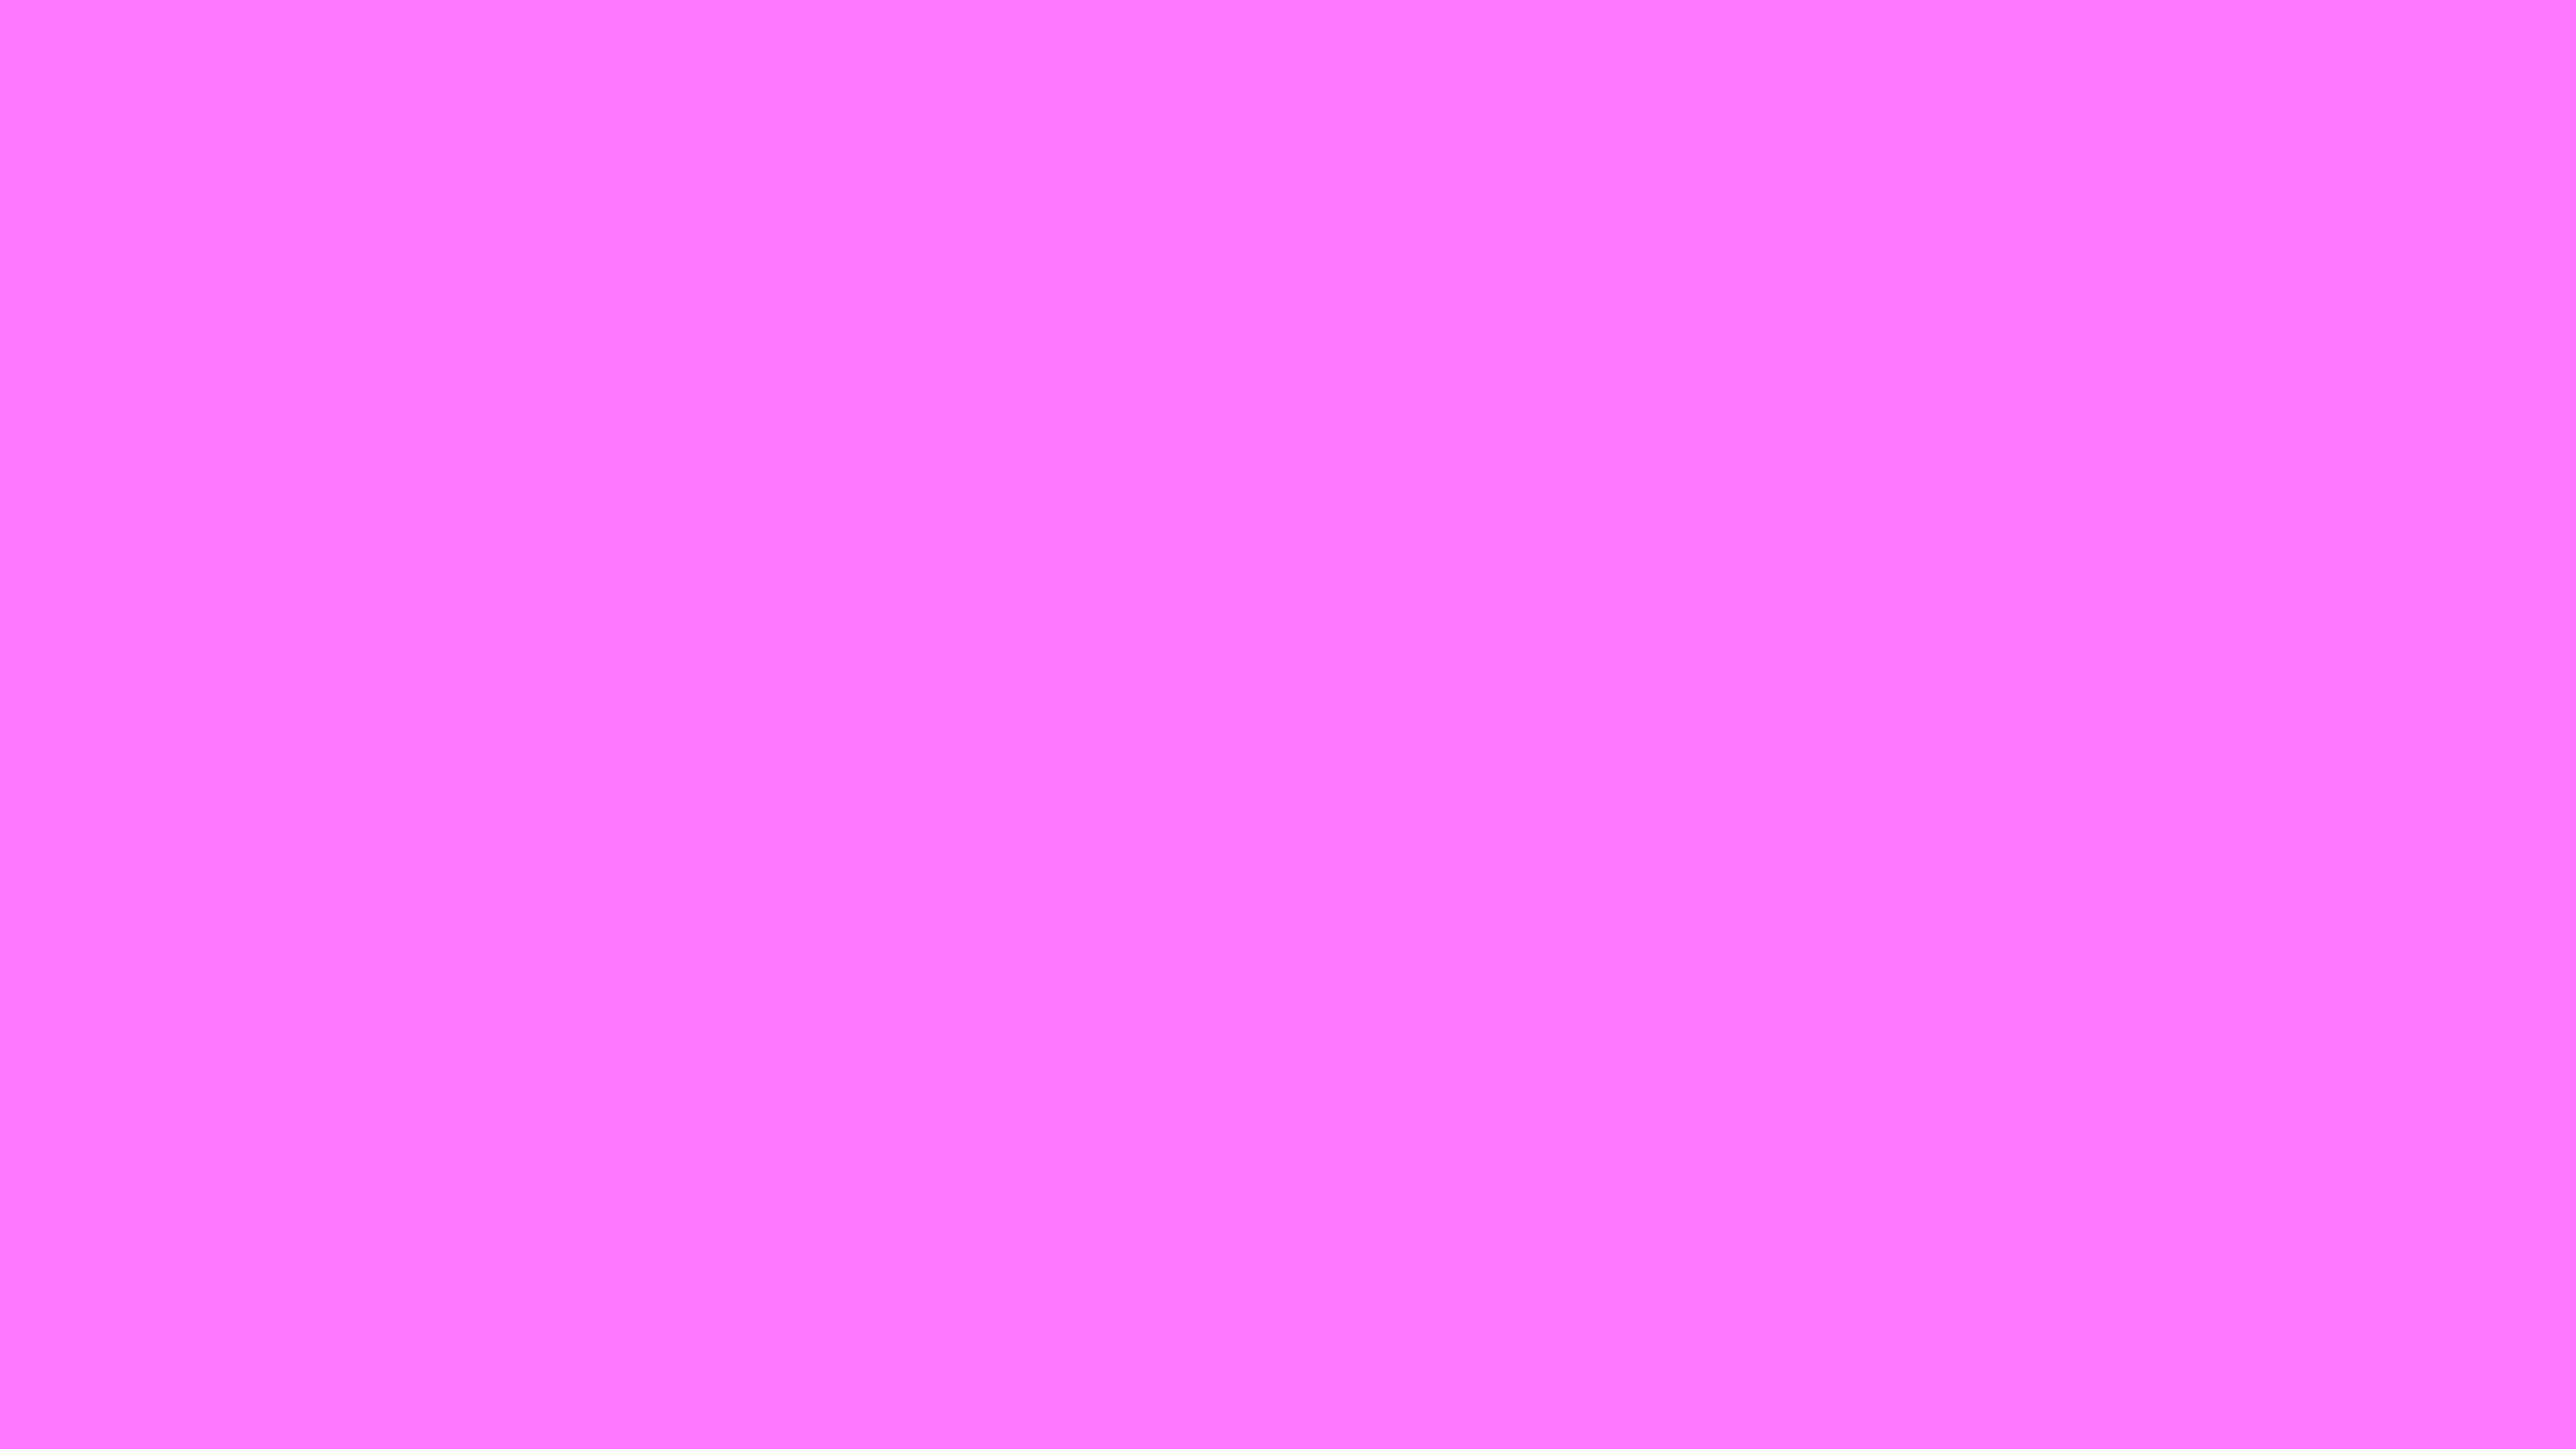 5120x2880 Fuchsia Pink Solid Color Background